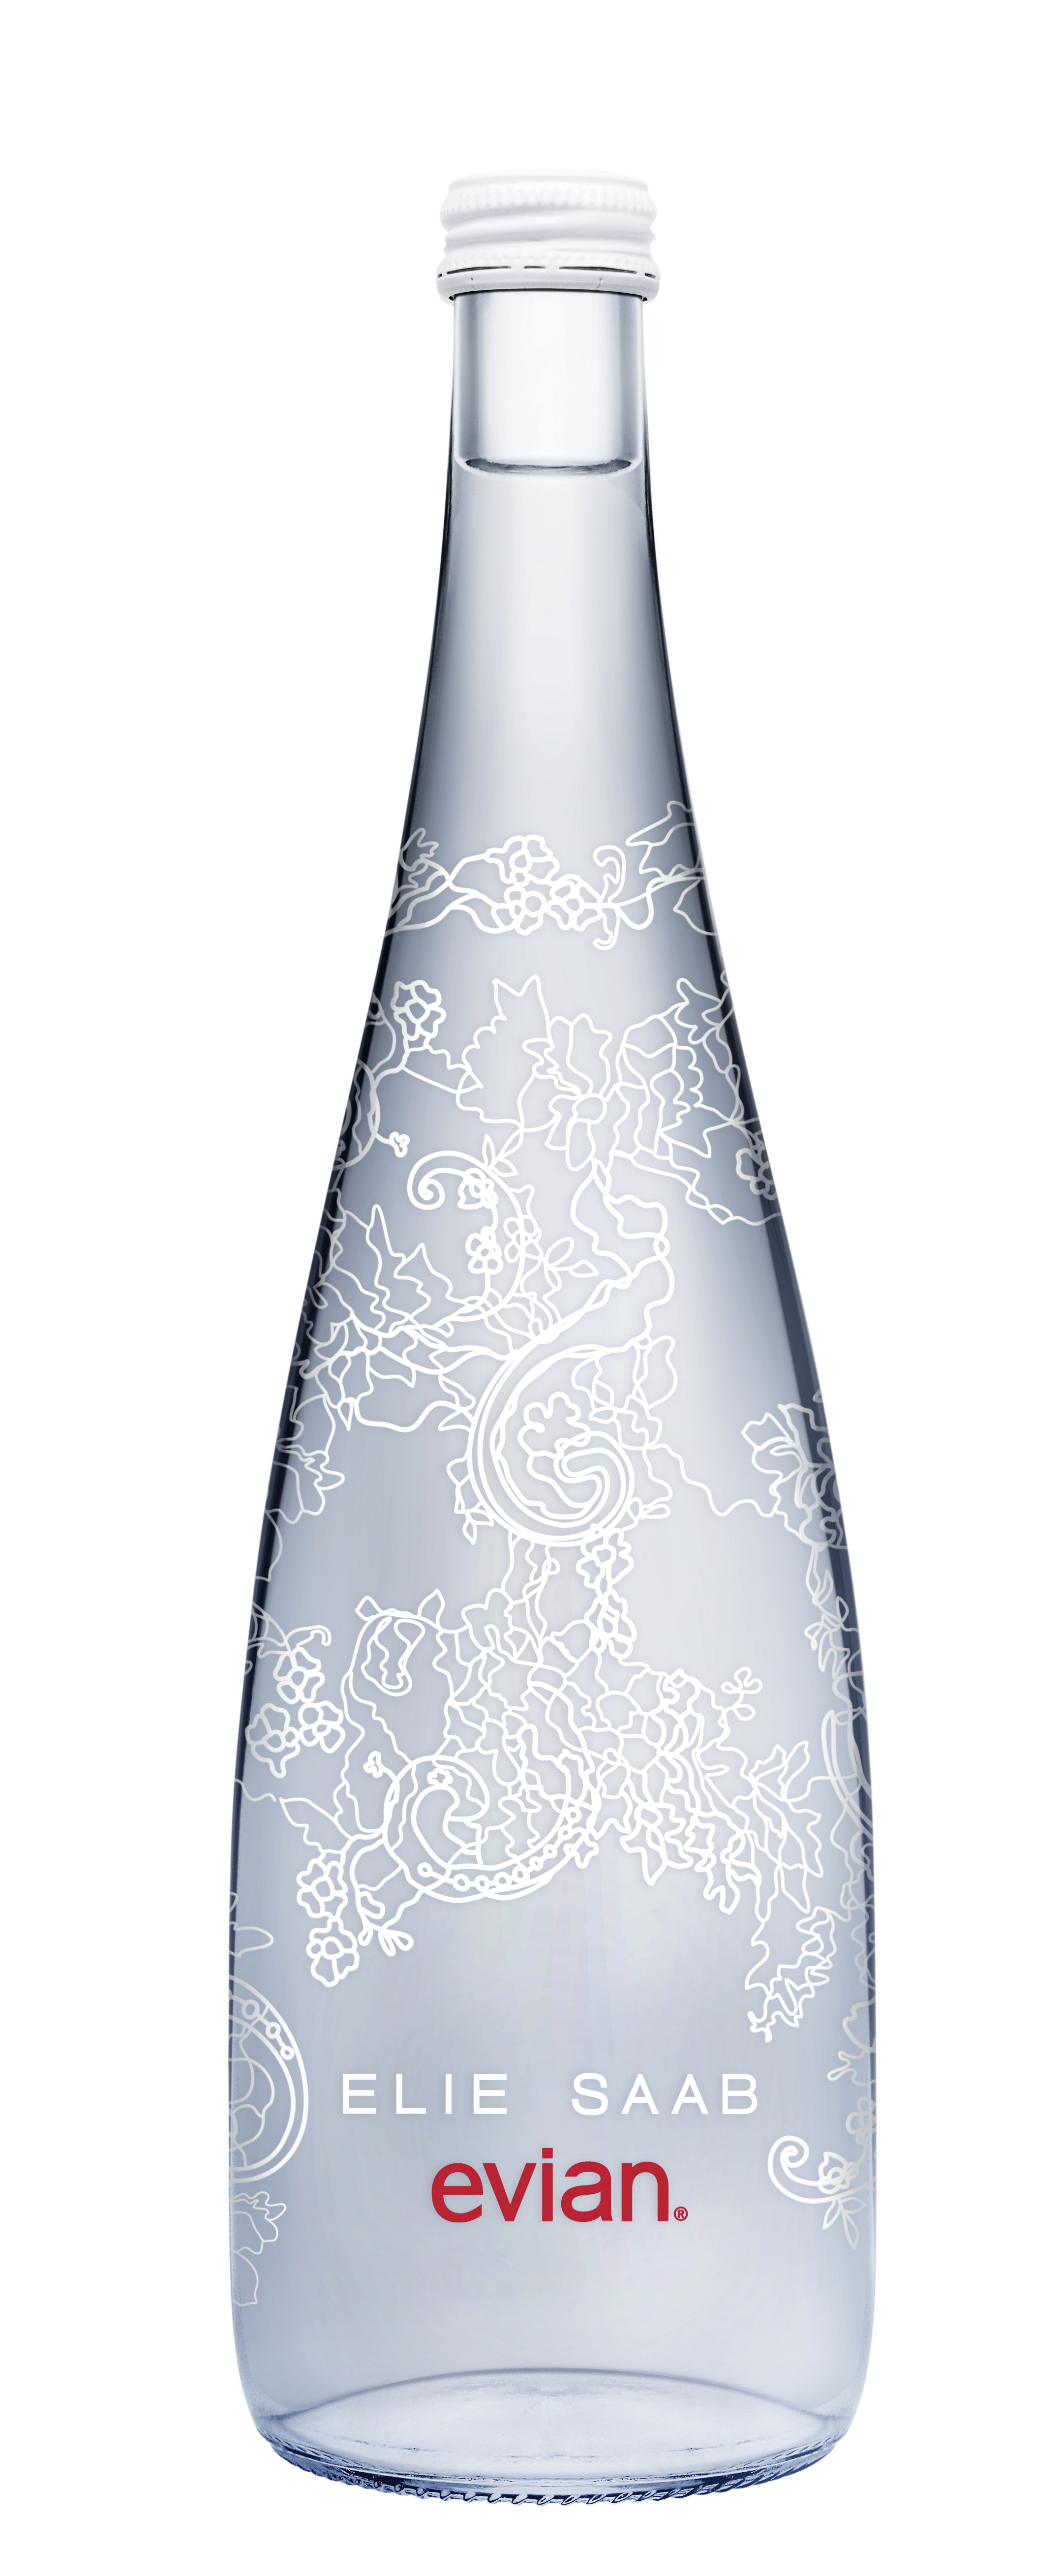 Photo: Evian limited edition bottle by Elie Saab